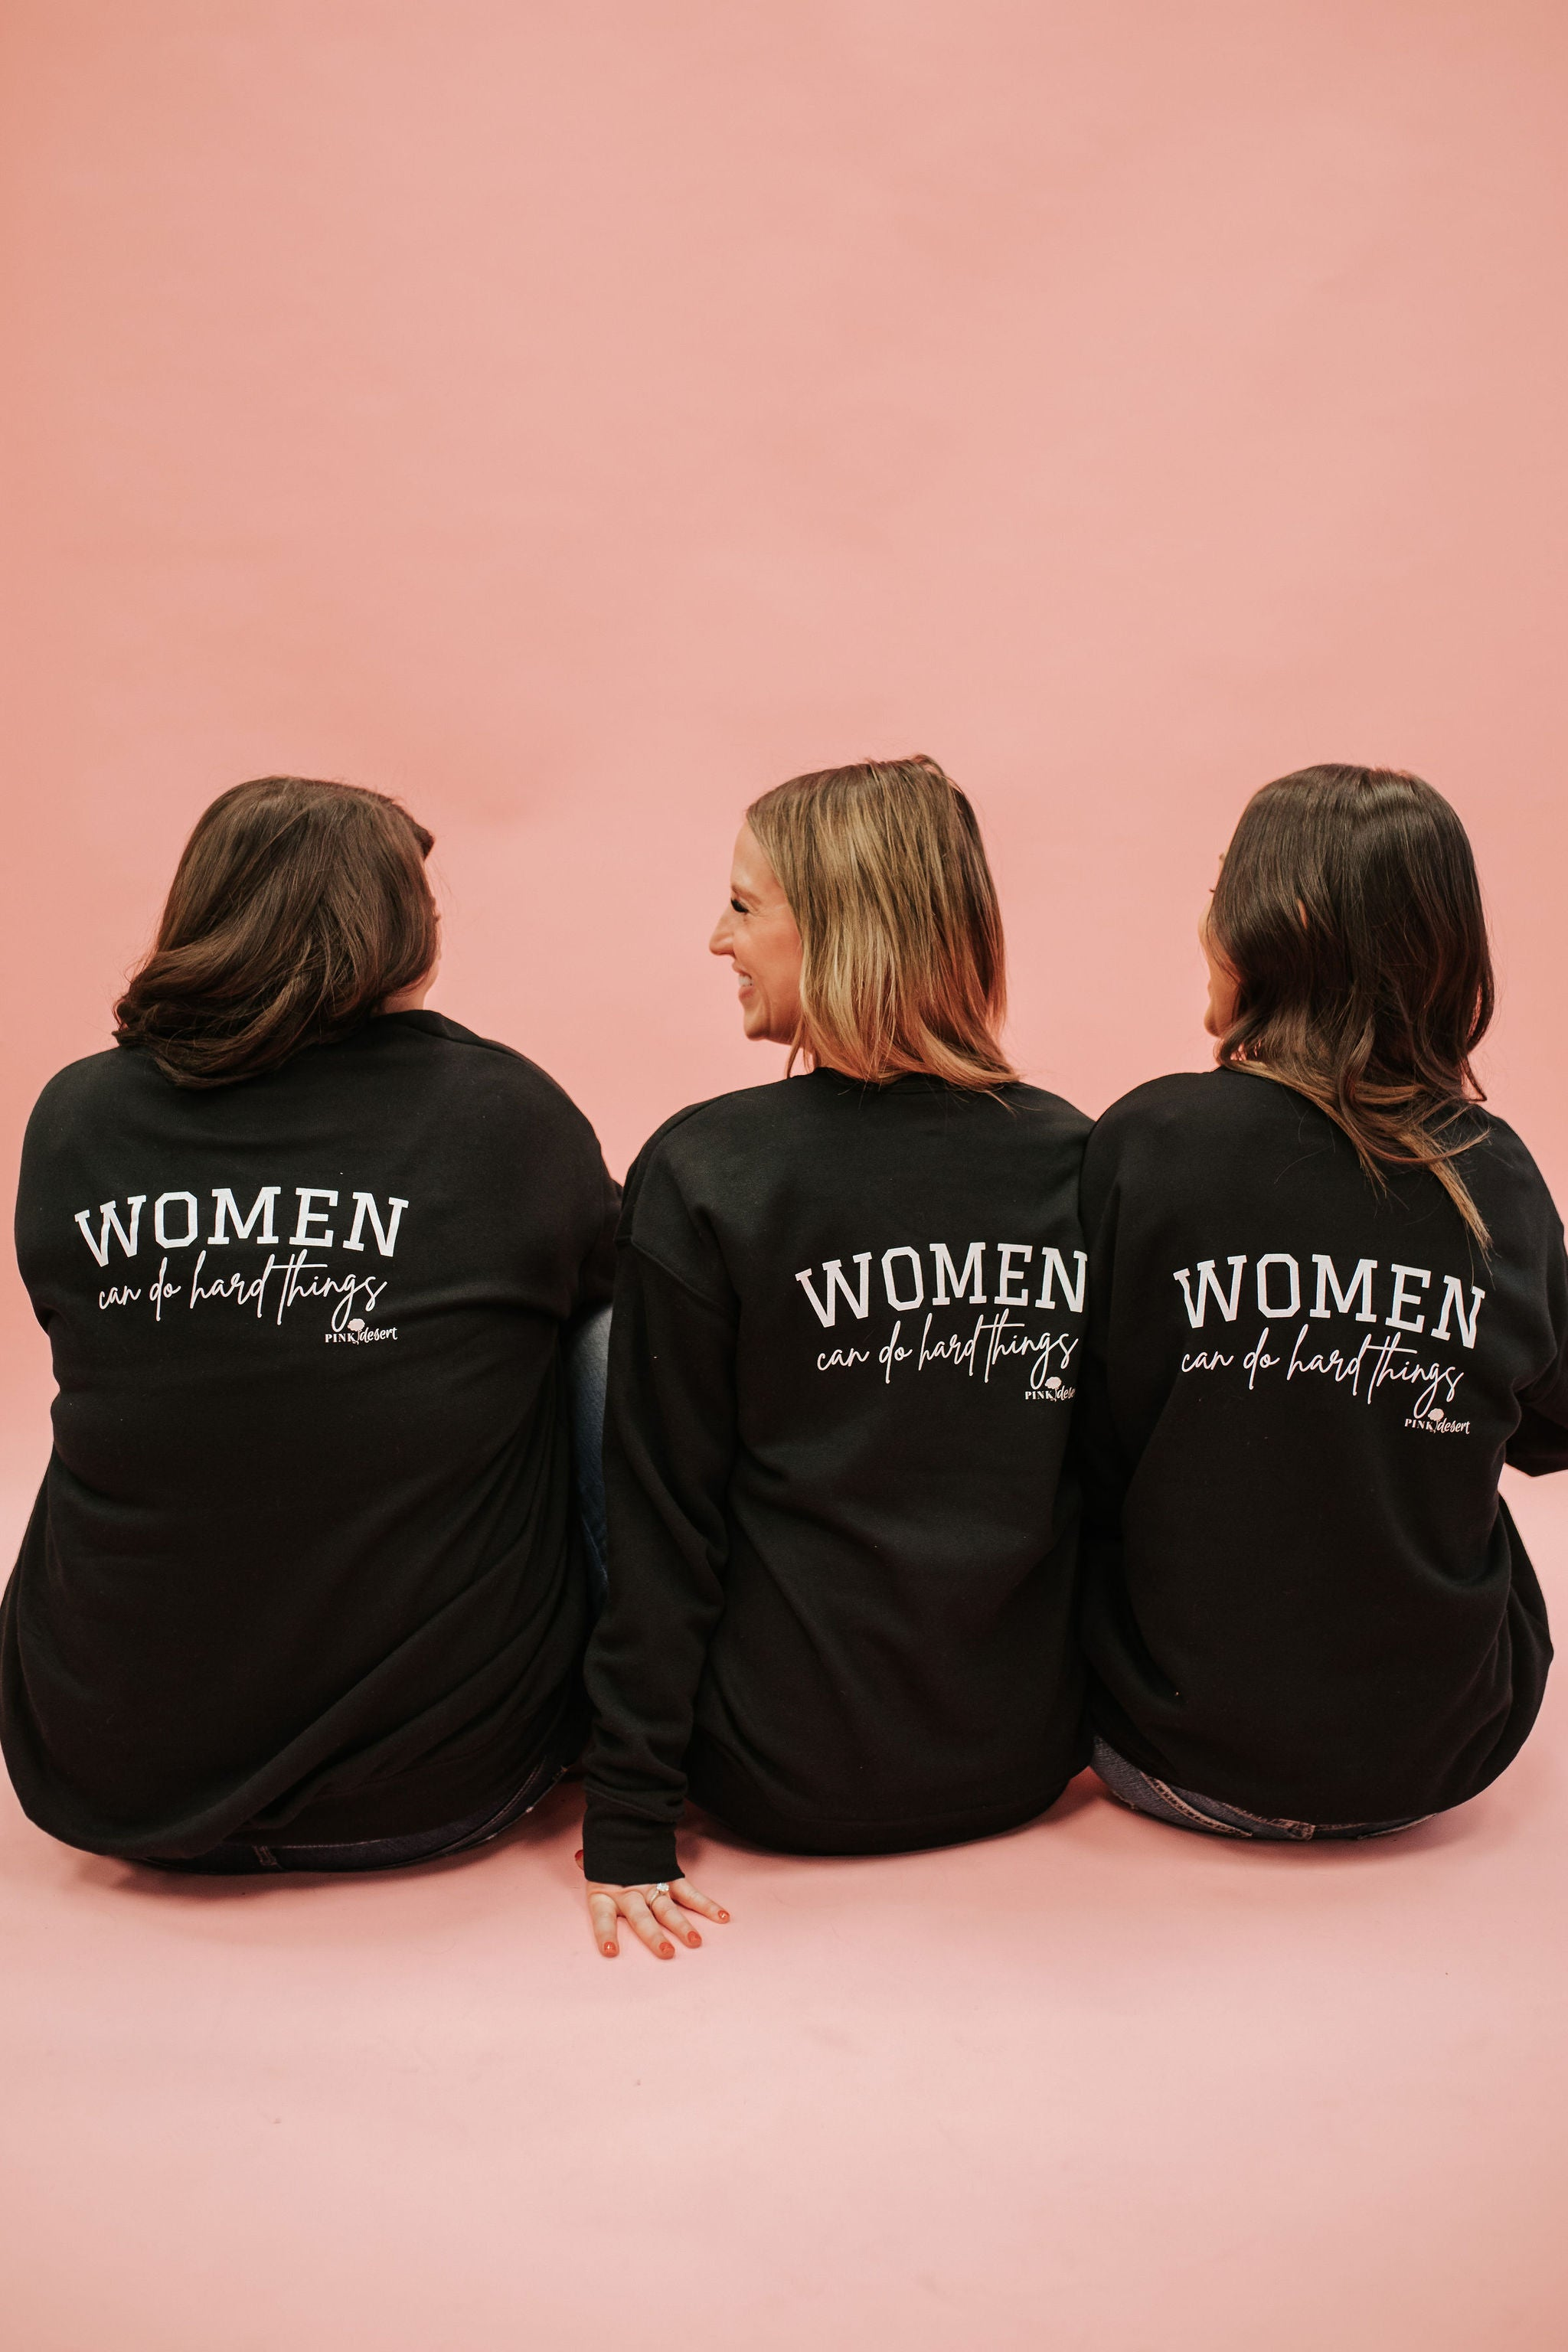 THE PINK DESERT WOMEN CAN DO HARD THINGS PULLOVER